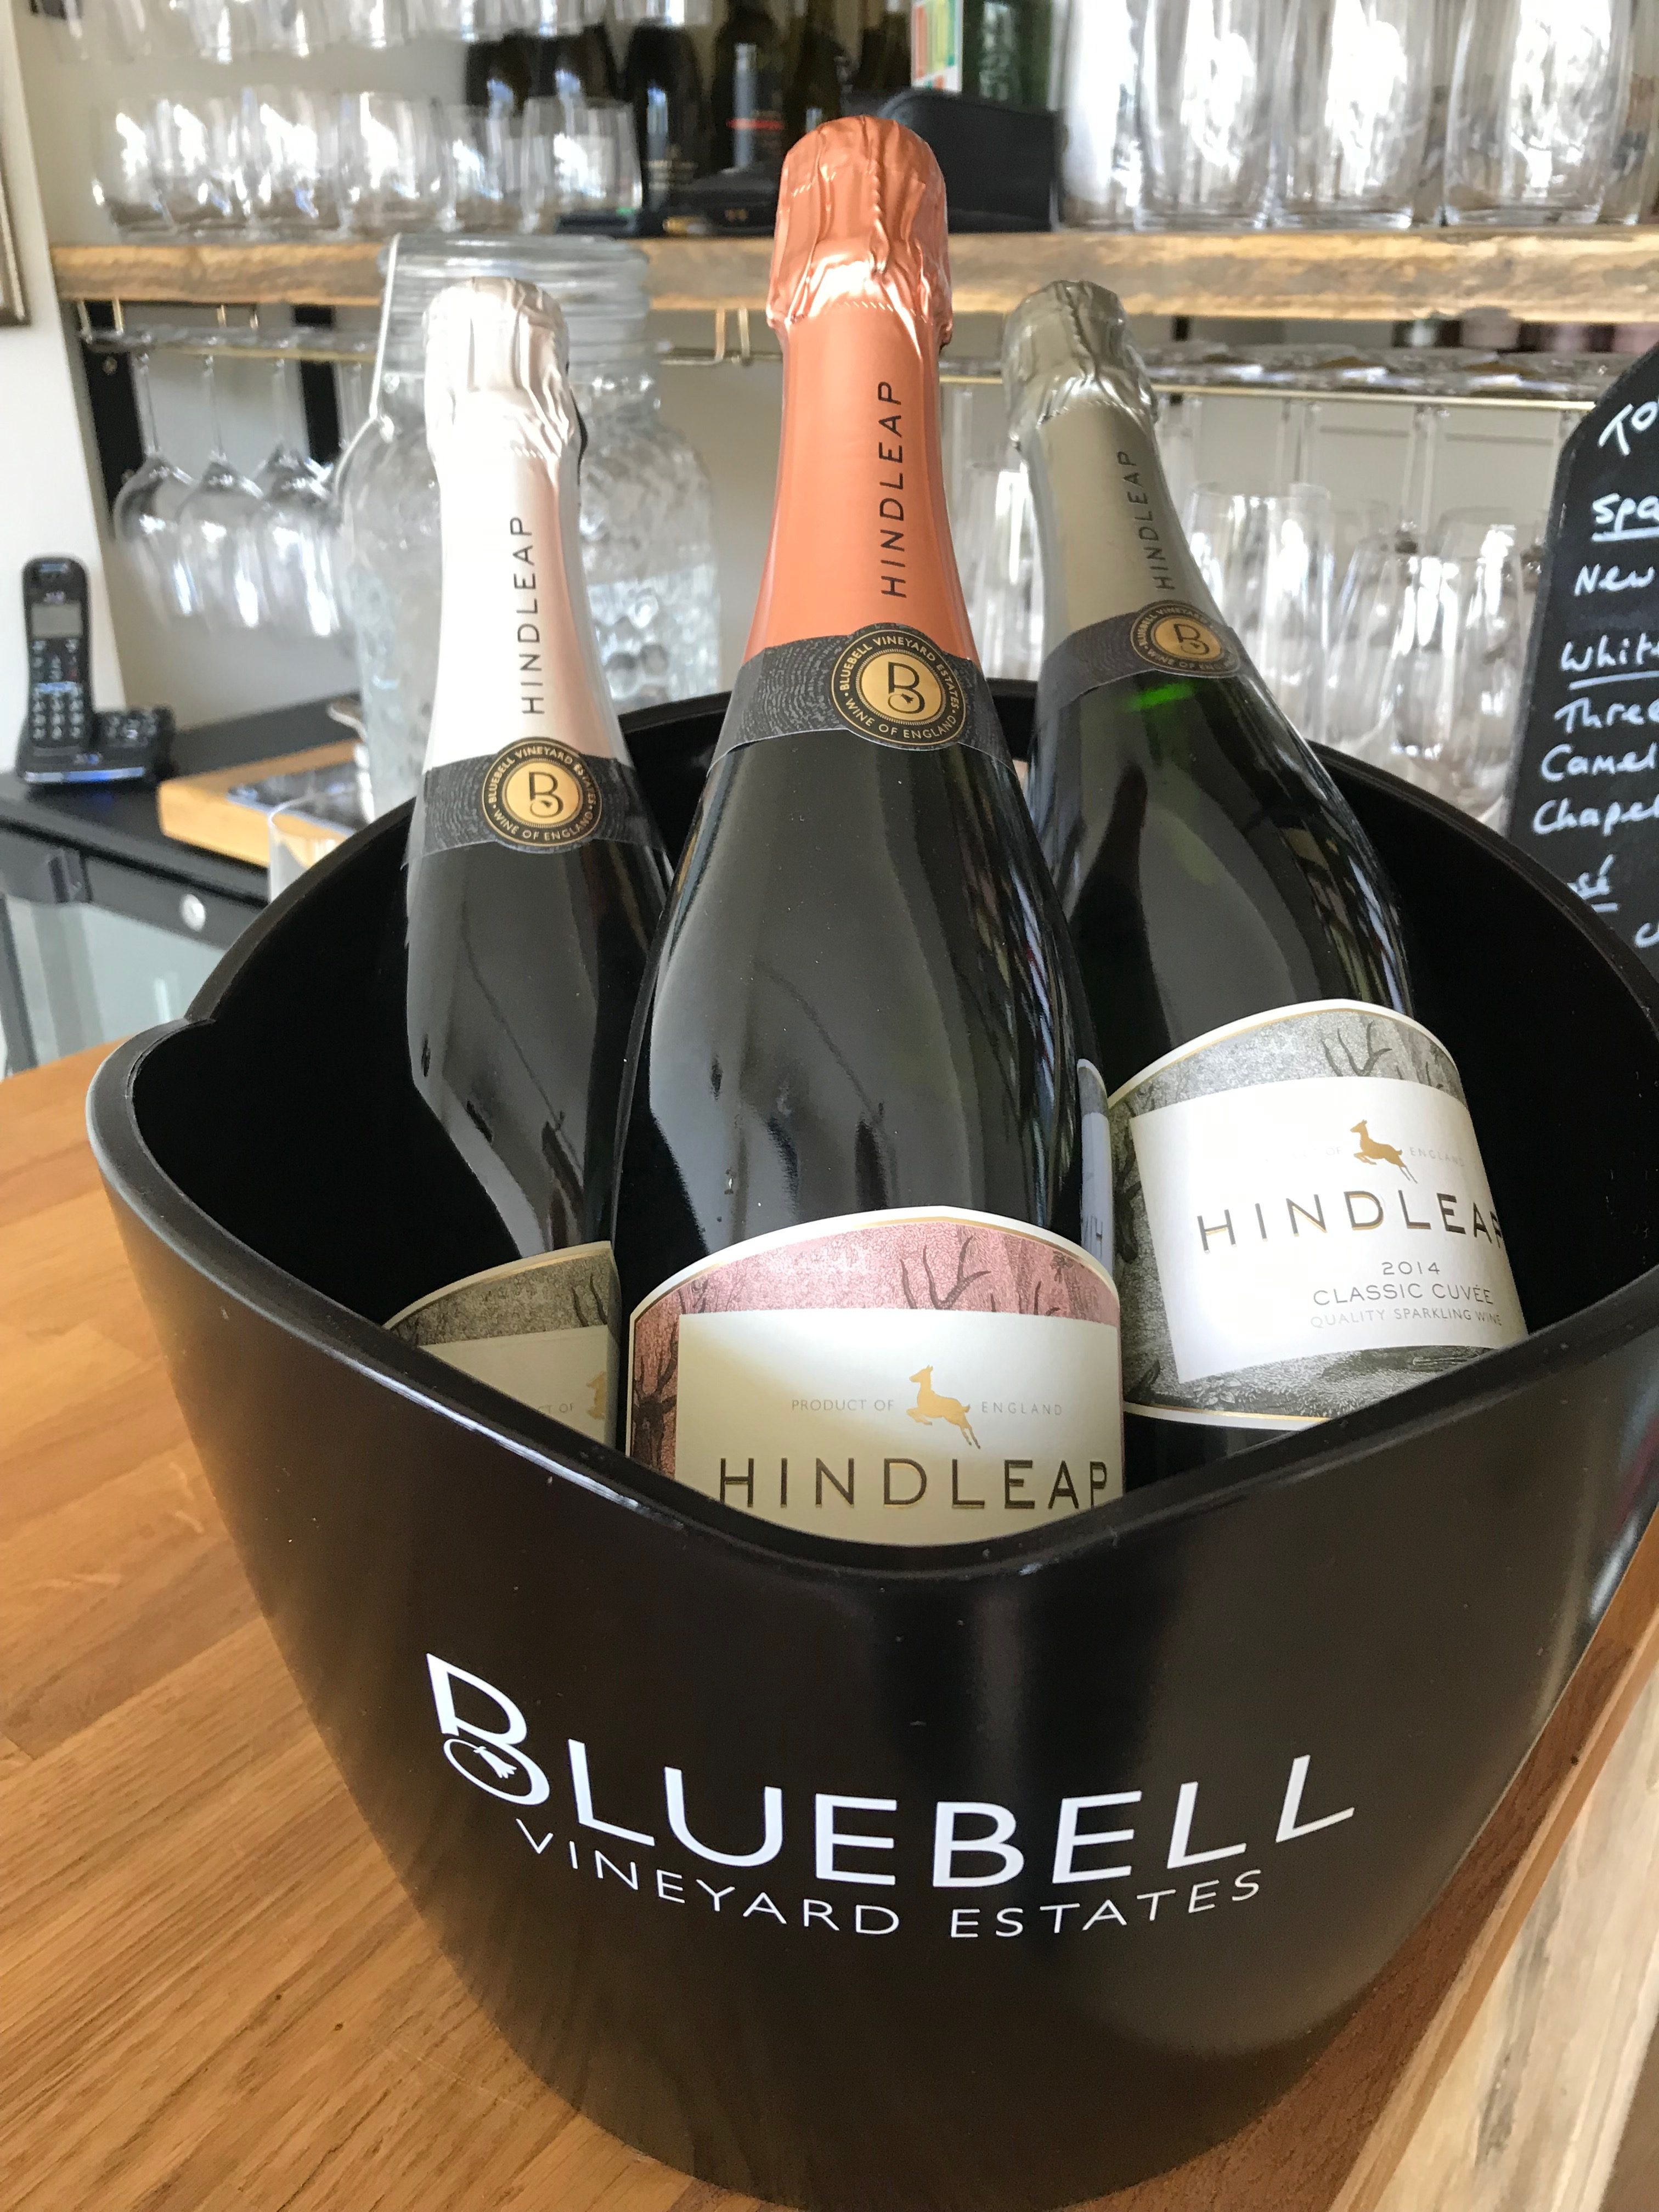 Bluebell Hindleap English Sparkling Wines